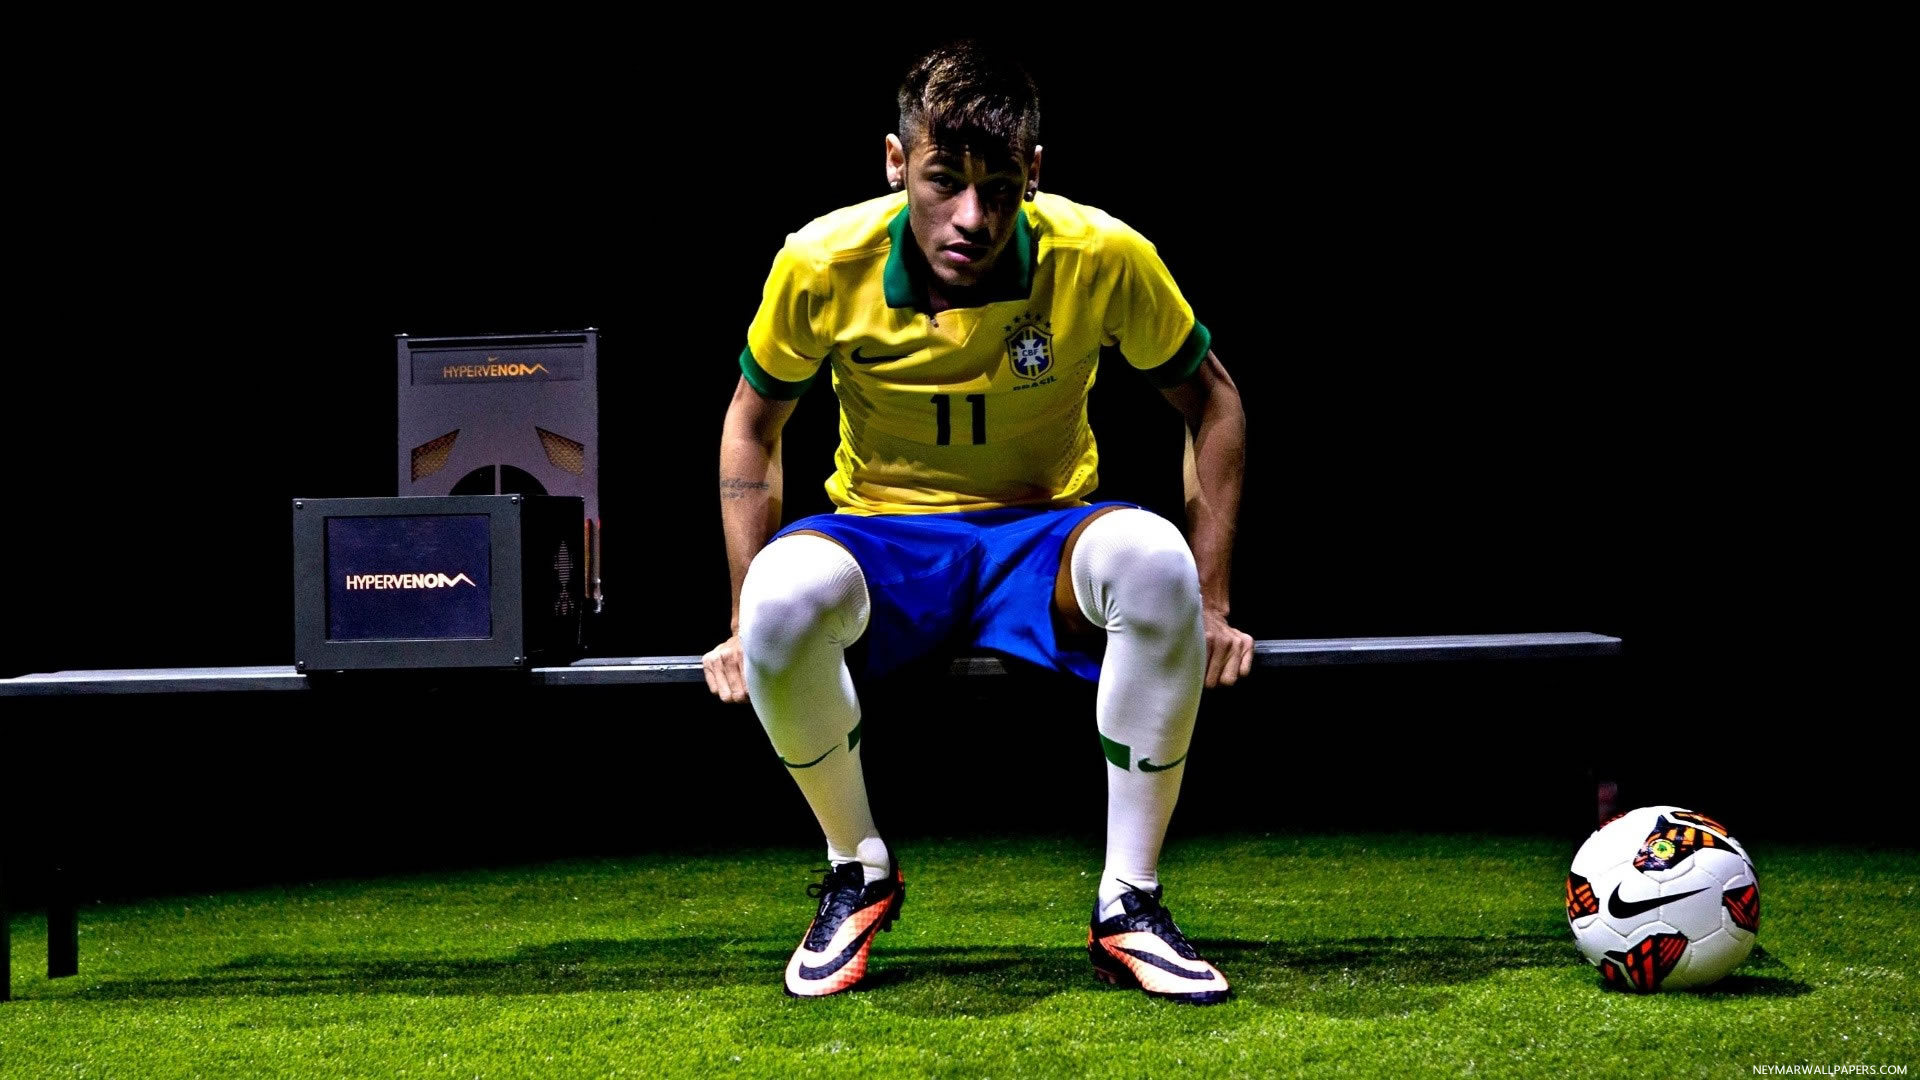 Neymar sitting wallpaper